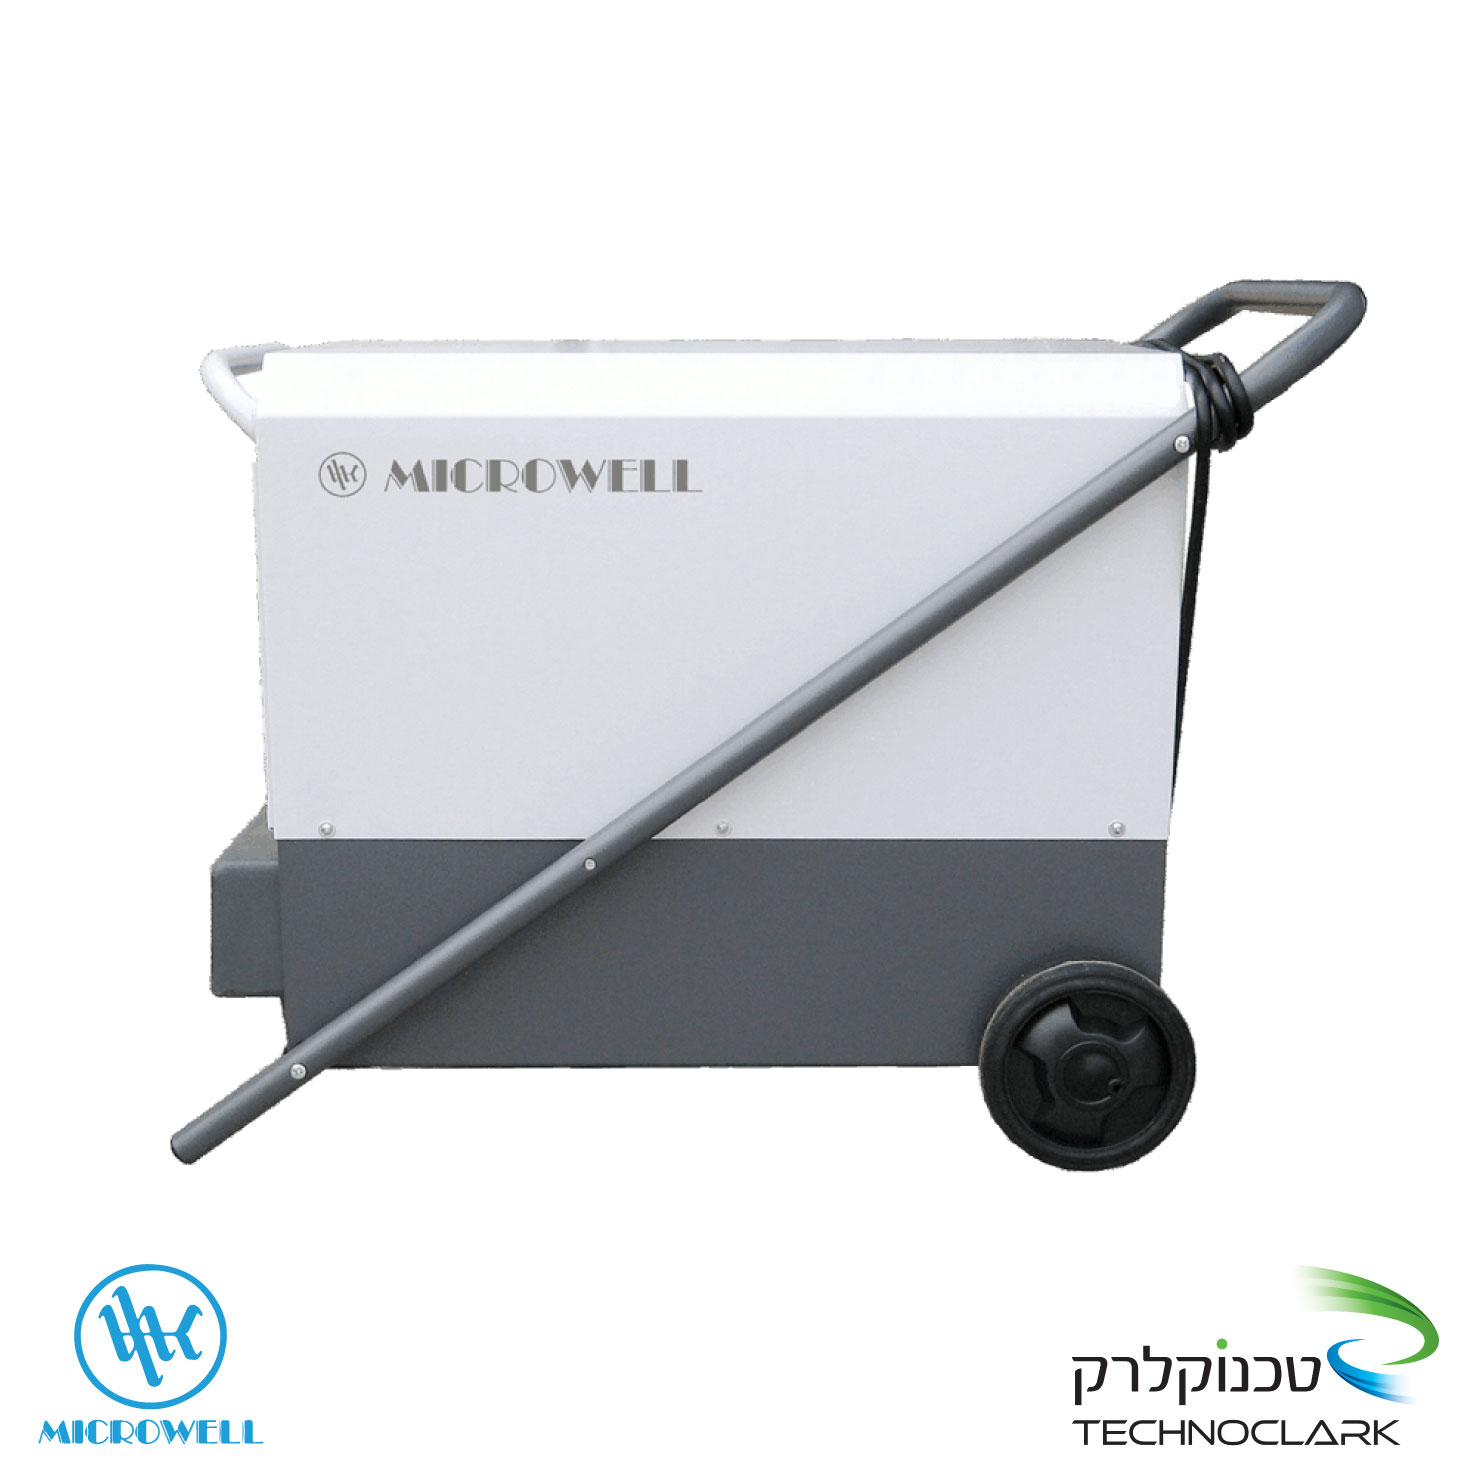 microwell_t40_01